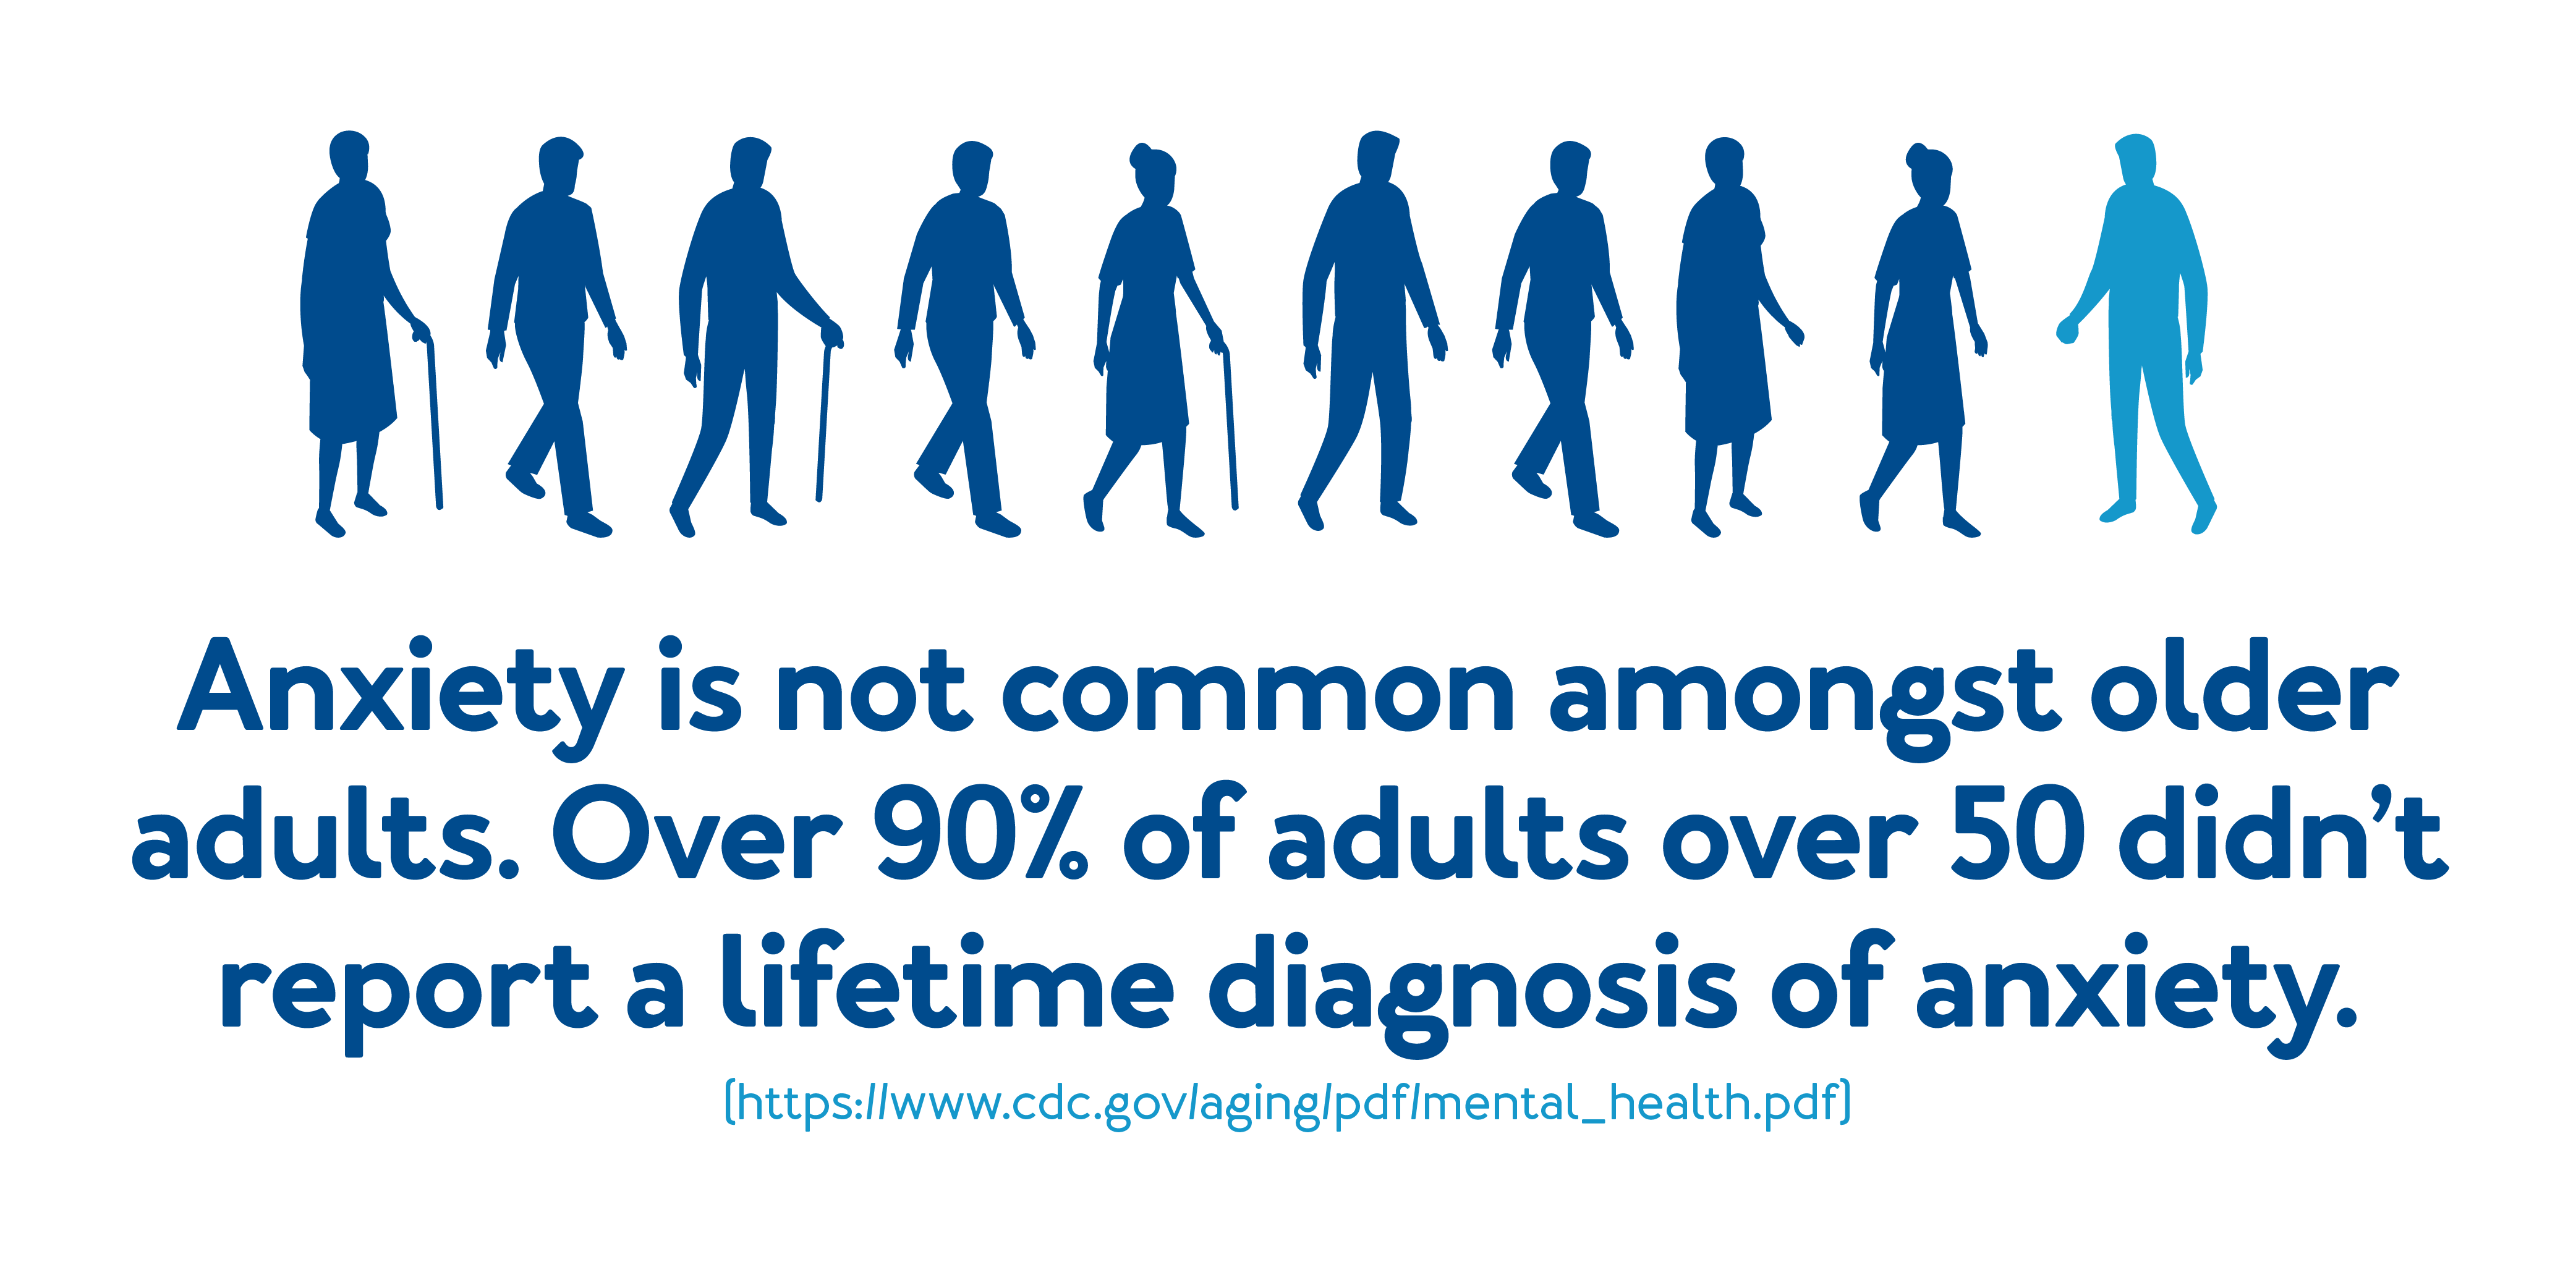 Anxiety is not common amongst older adults. Over 90% of adults over 50 didn't report a lifetime diagnosis of anxiety.